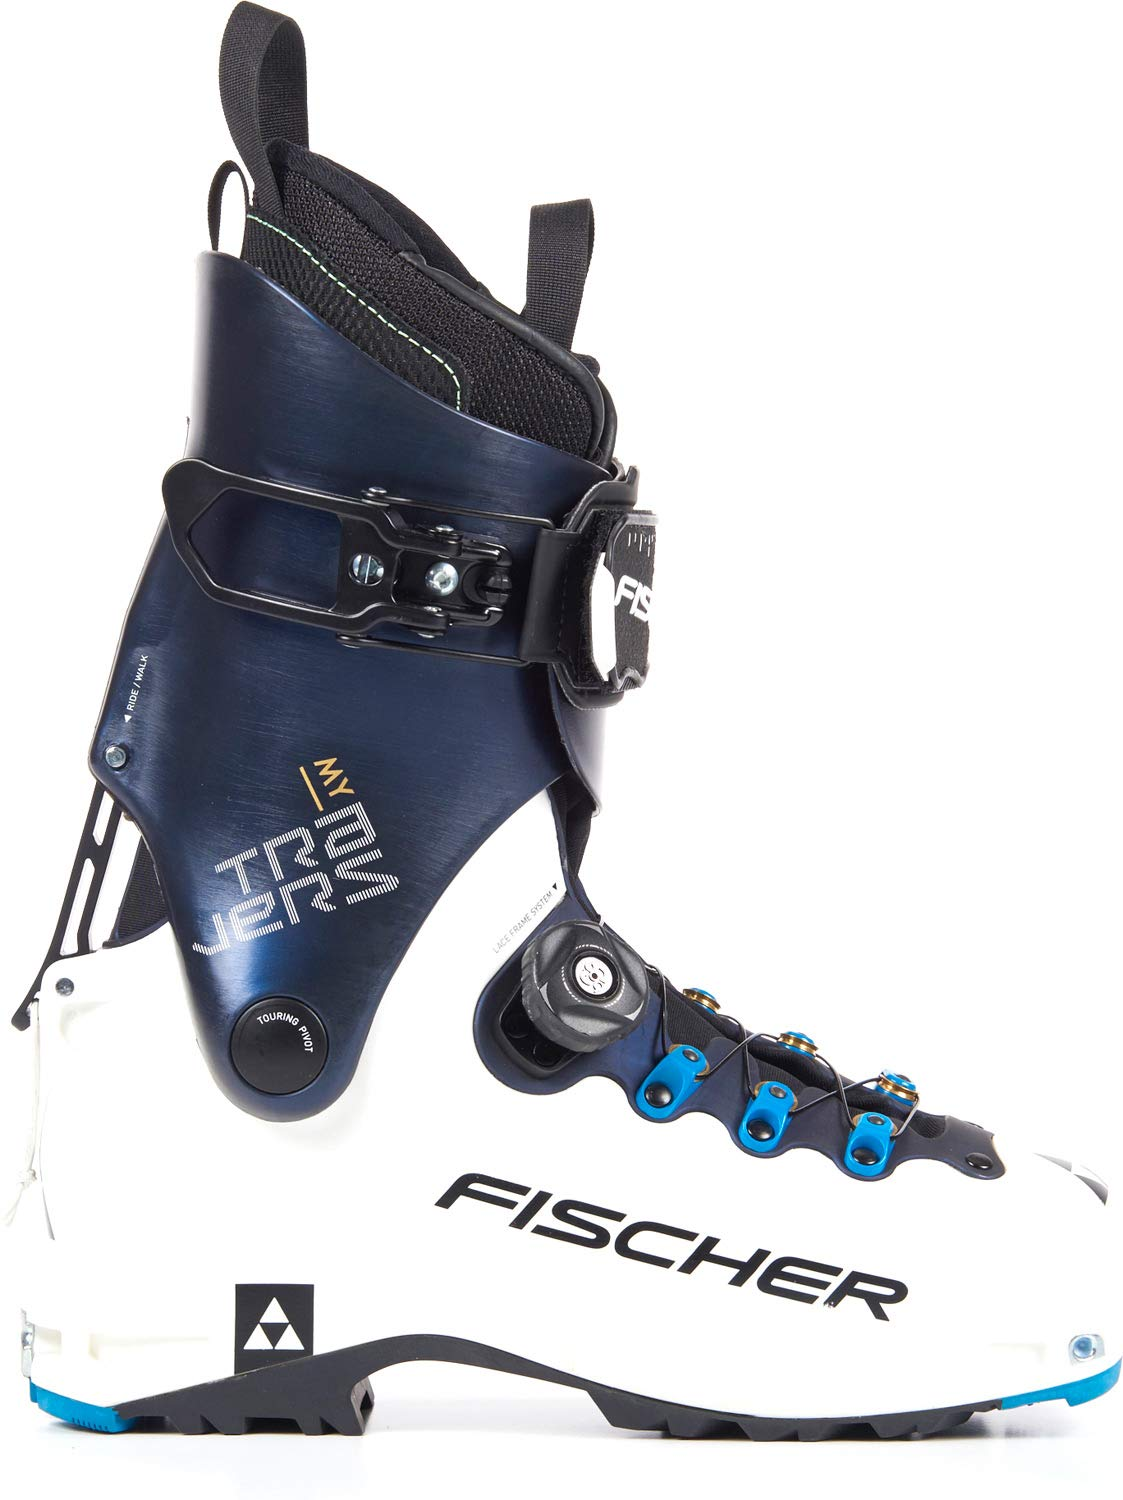 Fischer My Travers Alpine Touring Boot – Women 's 25.5 ホワイト/ダークブルー B073NWDTNR